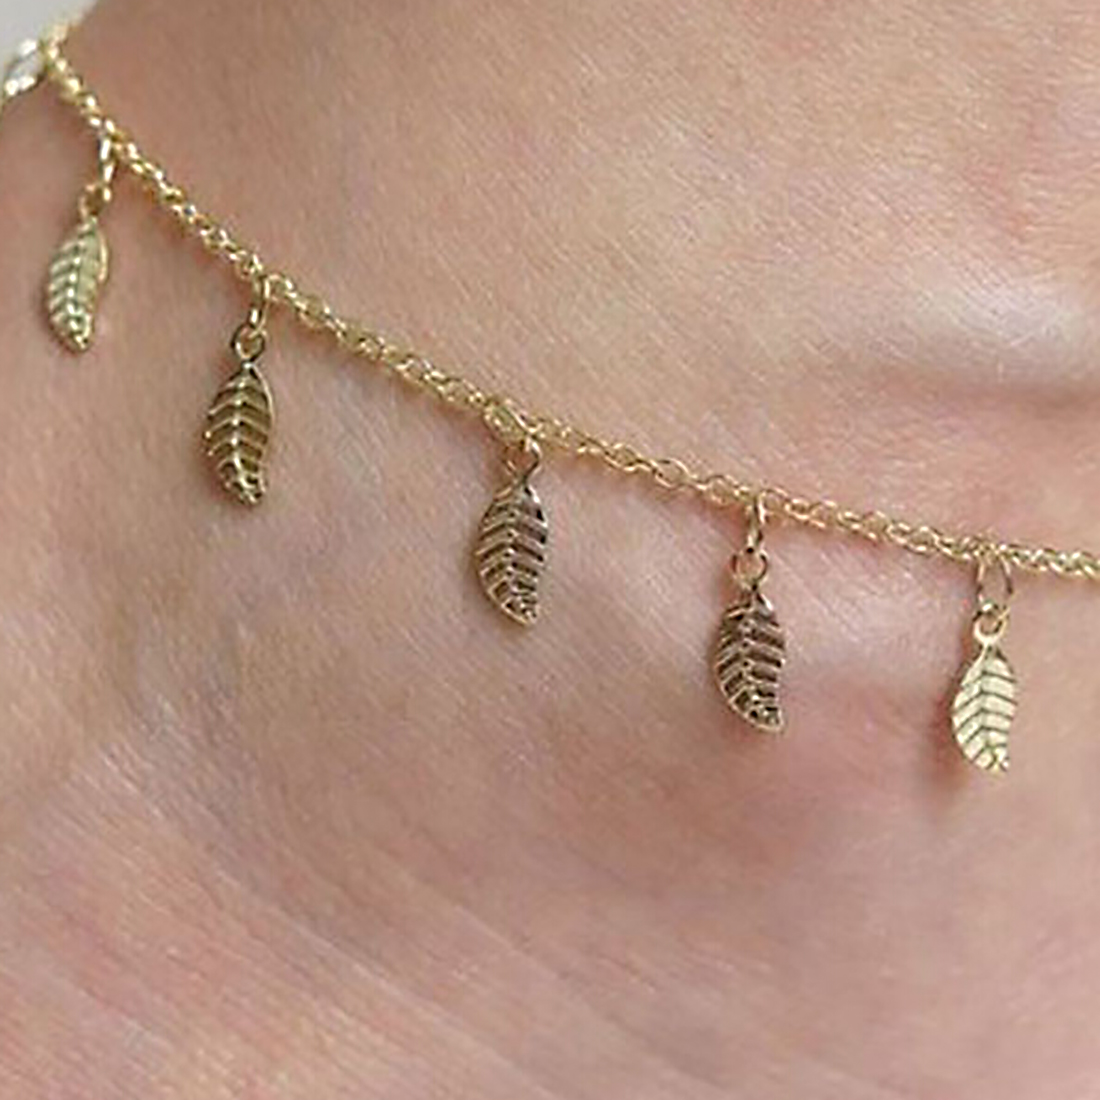 Fine Sexy Anklet Style Gold Leaves Ankle For Women Bracelet Barefoot Sandals Foot Jewelry Leg Chain On Foot